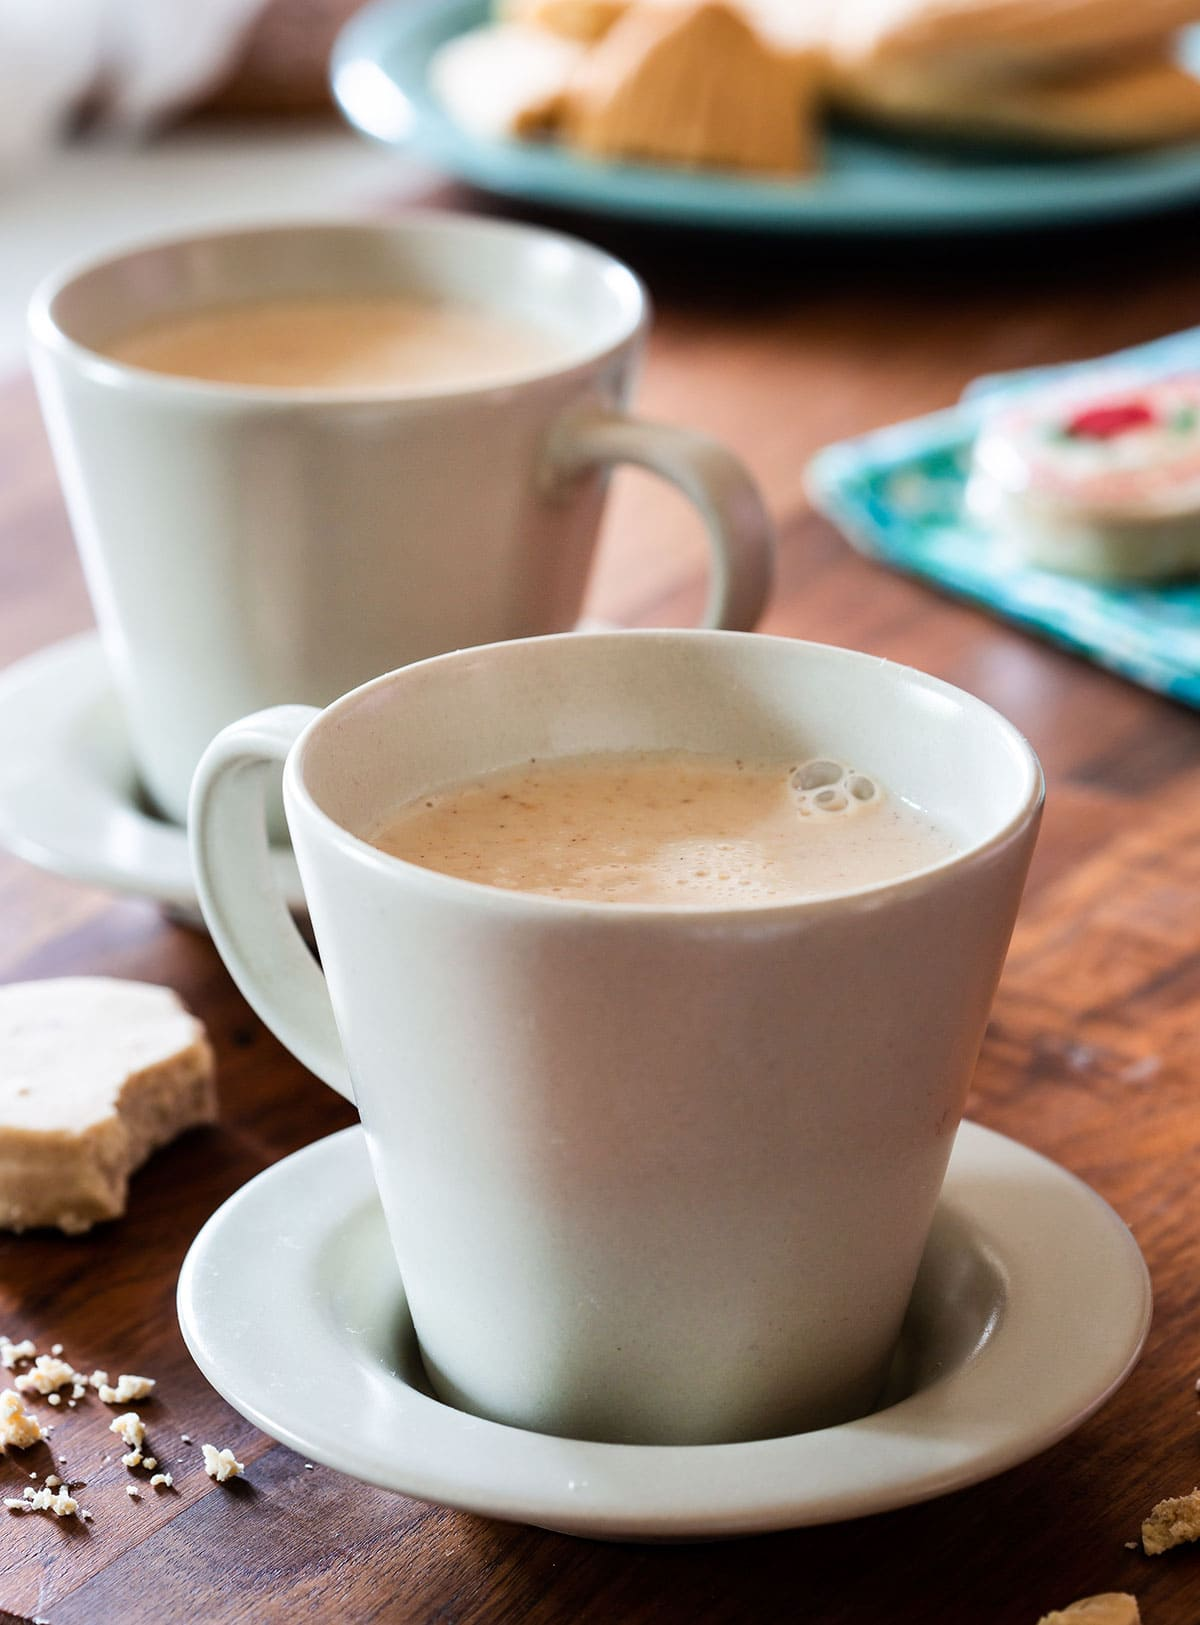 Two cups with Mexican atole de mazapan.